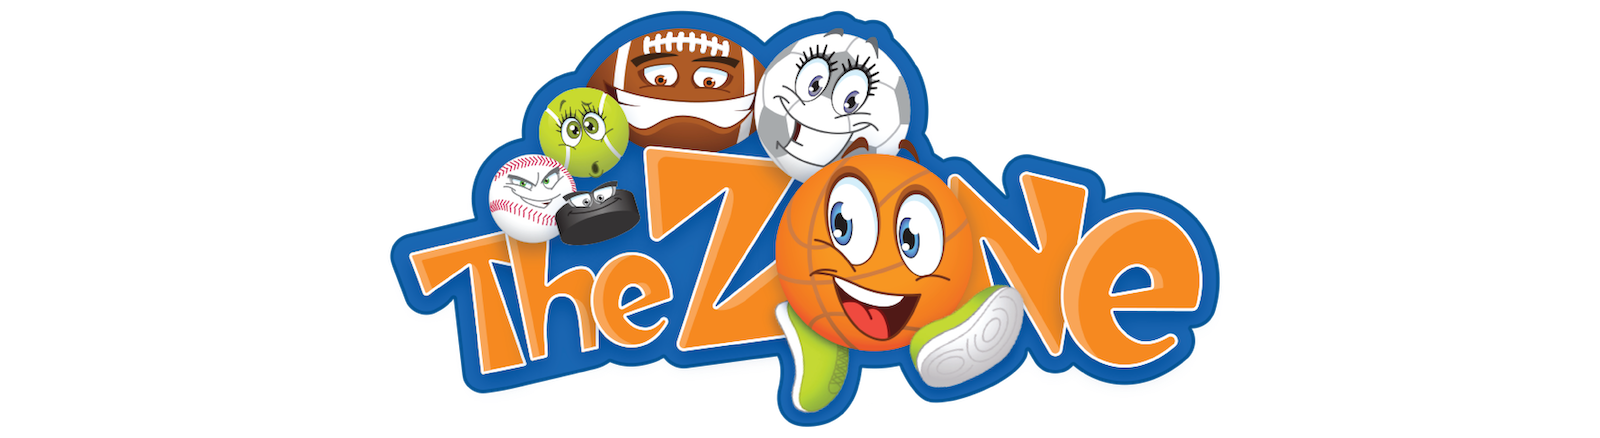 Logo for TheZone - an interactive children's play area with an athletics and STEAM focus